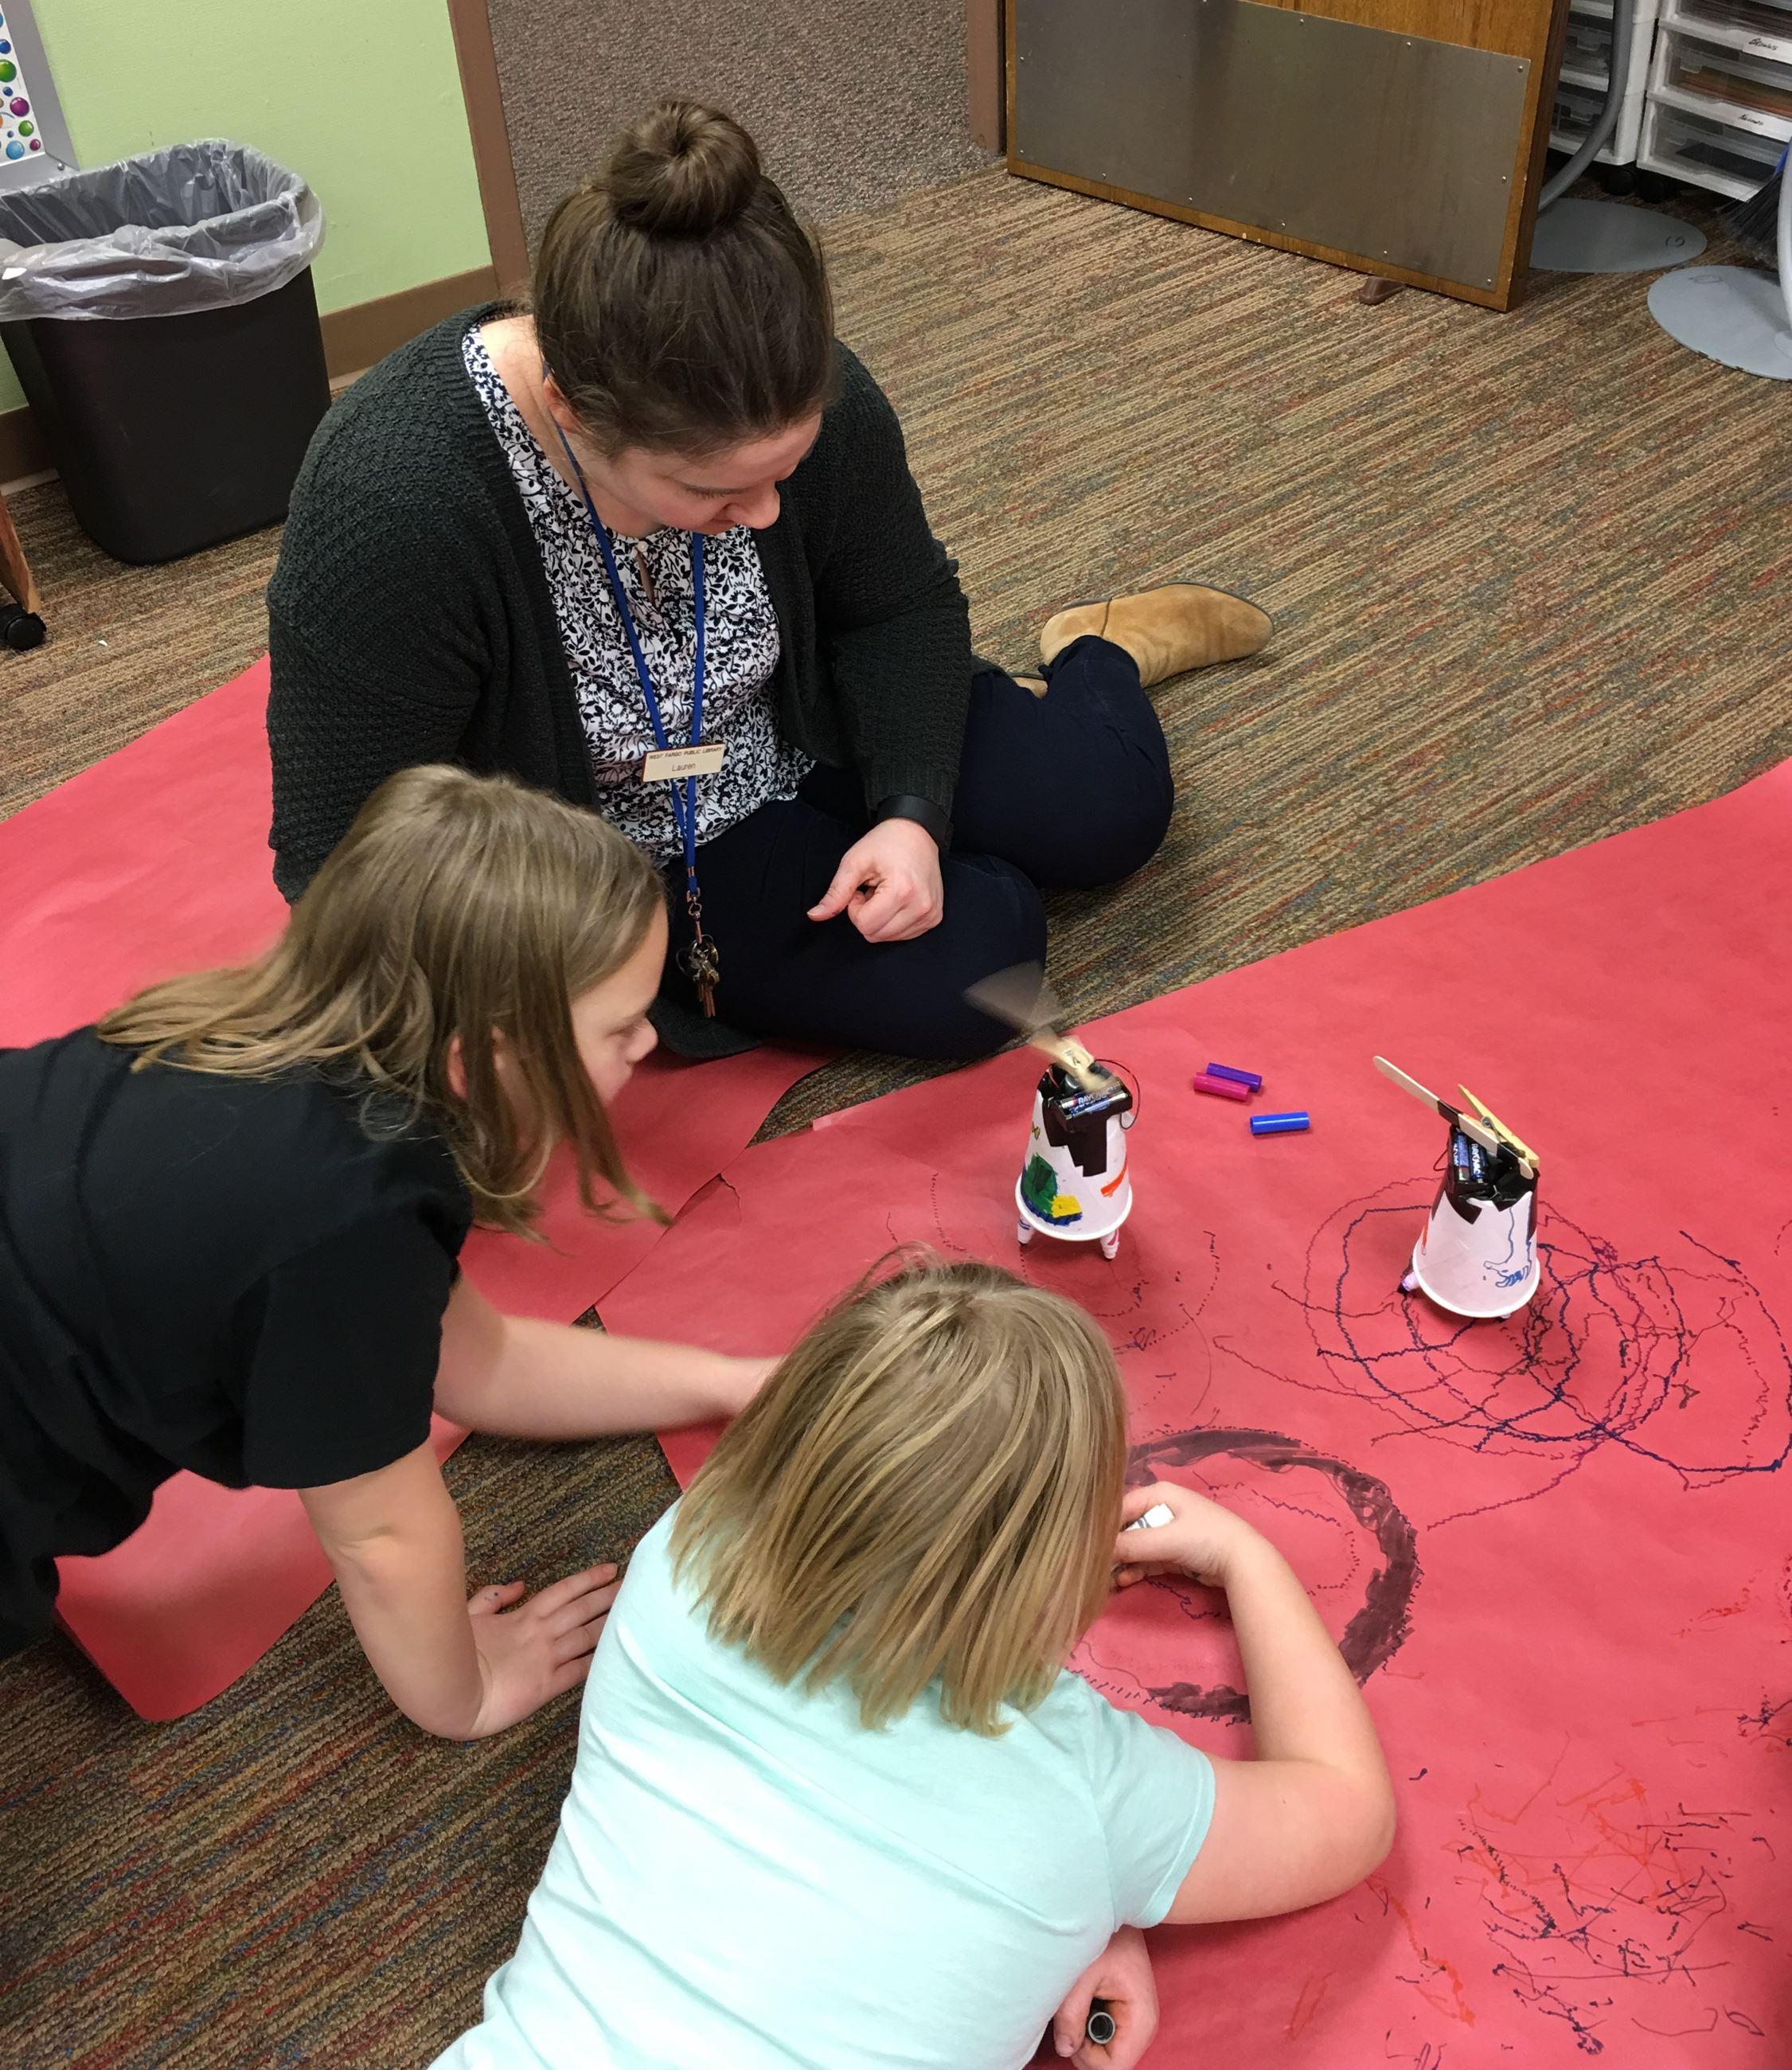 Students making robots in an after-school activity